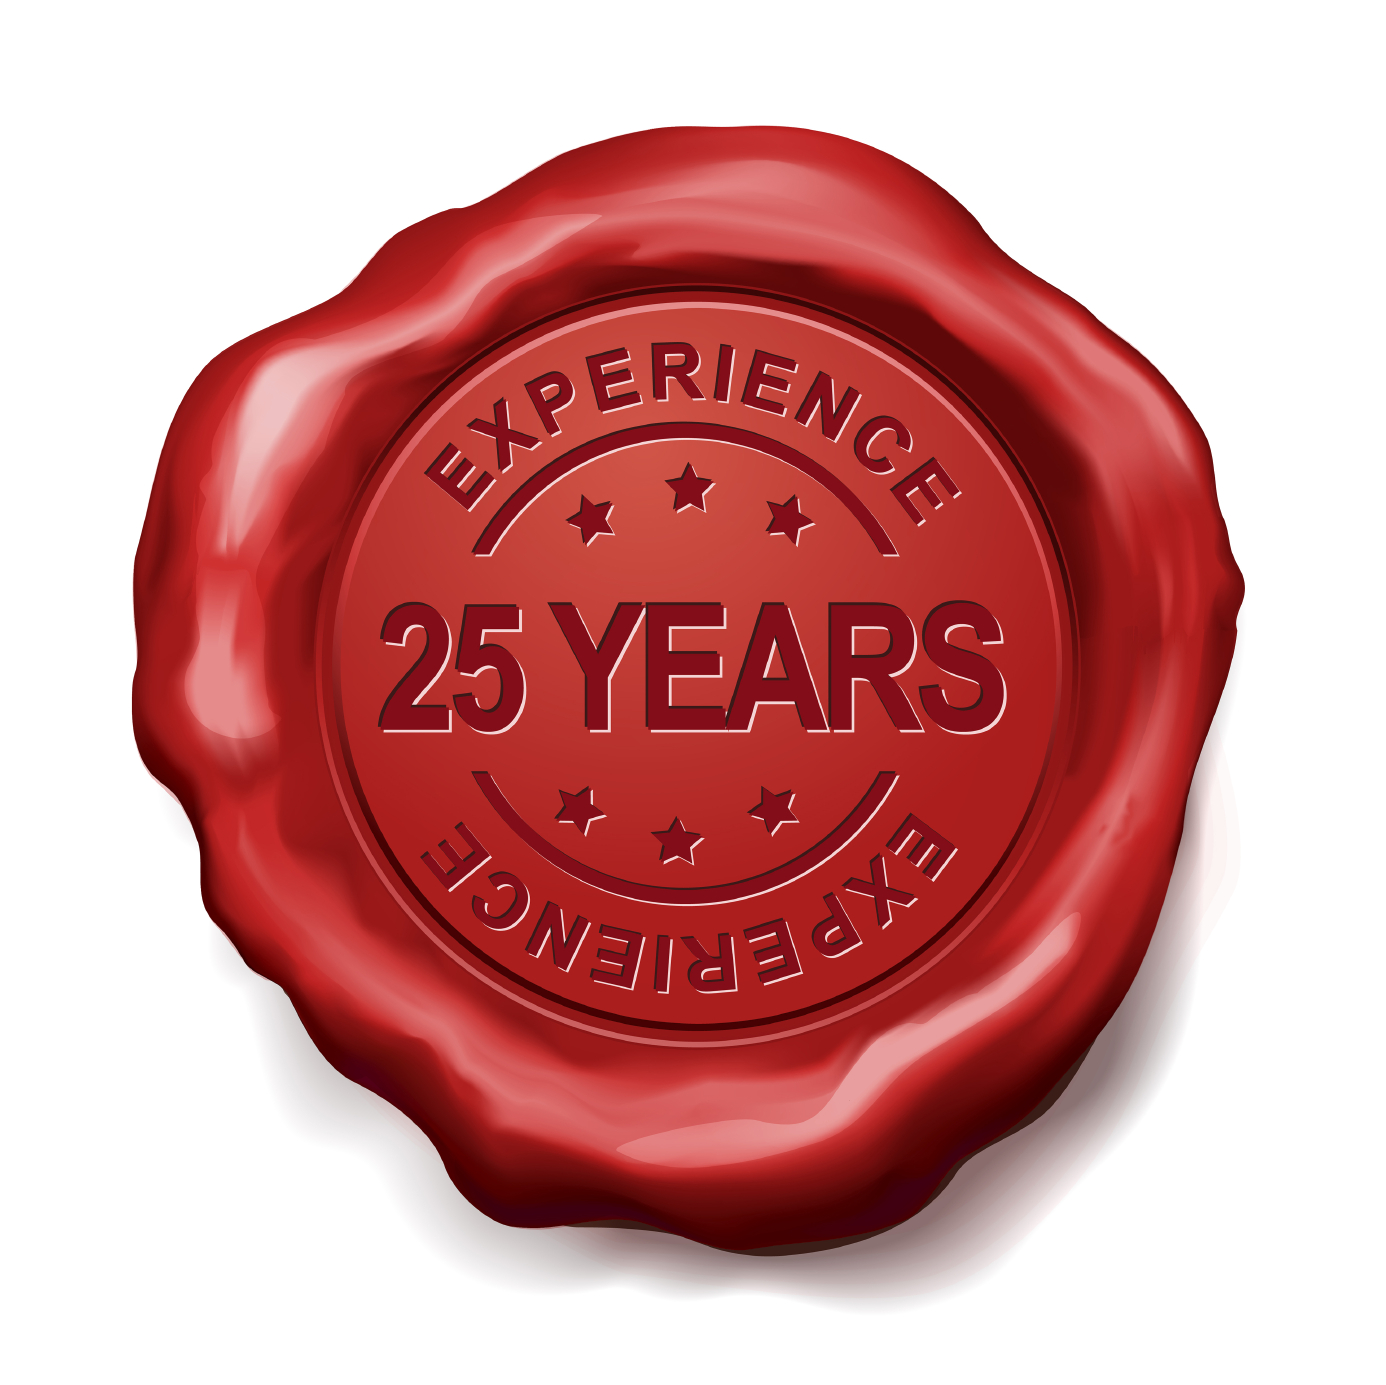 25 years experience red wax seal over white background